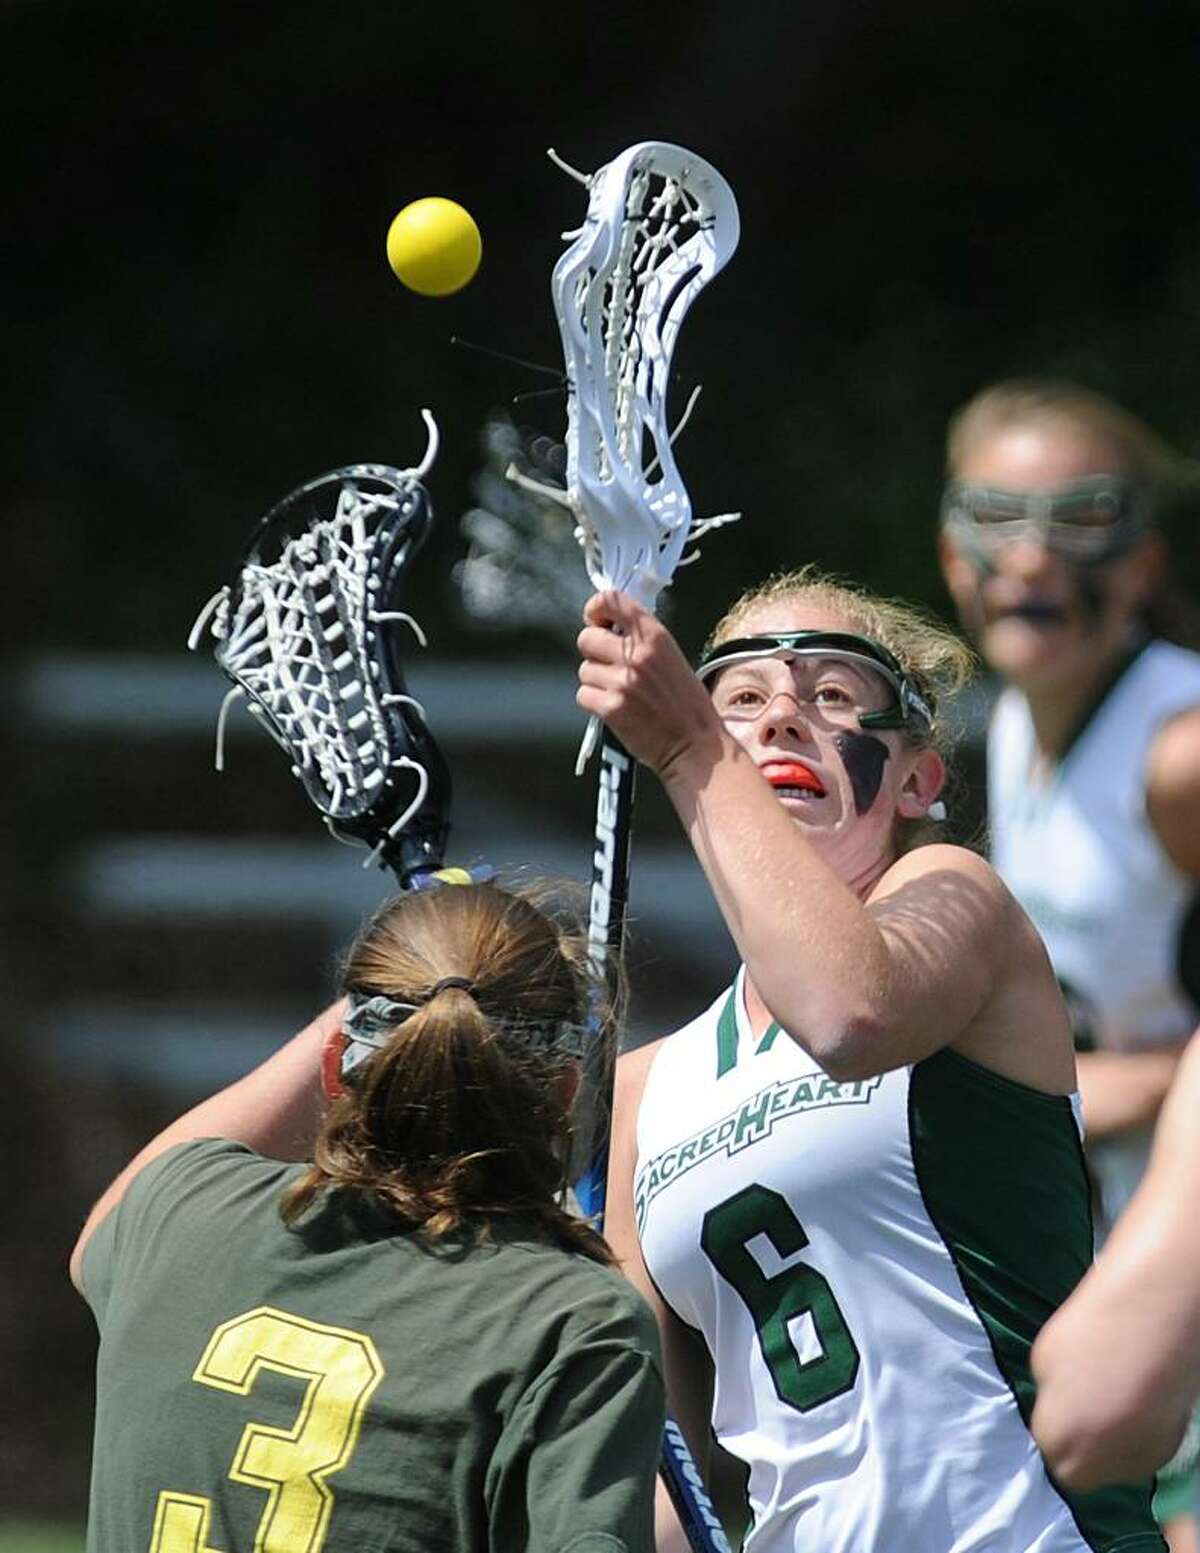 Tory Bensen, # 6 of Convent of the Sacred Heart, right faces-off against Alexa Pujol, # 3, of Greenwich Academy, during lst half action at GA, Saturday. GA defeated CSH, 19-15.